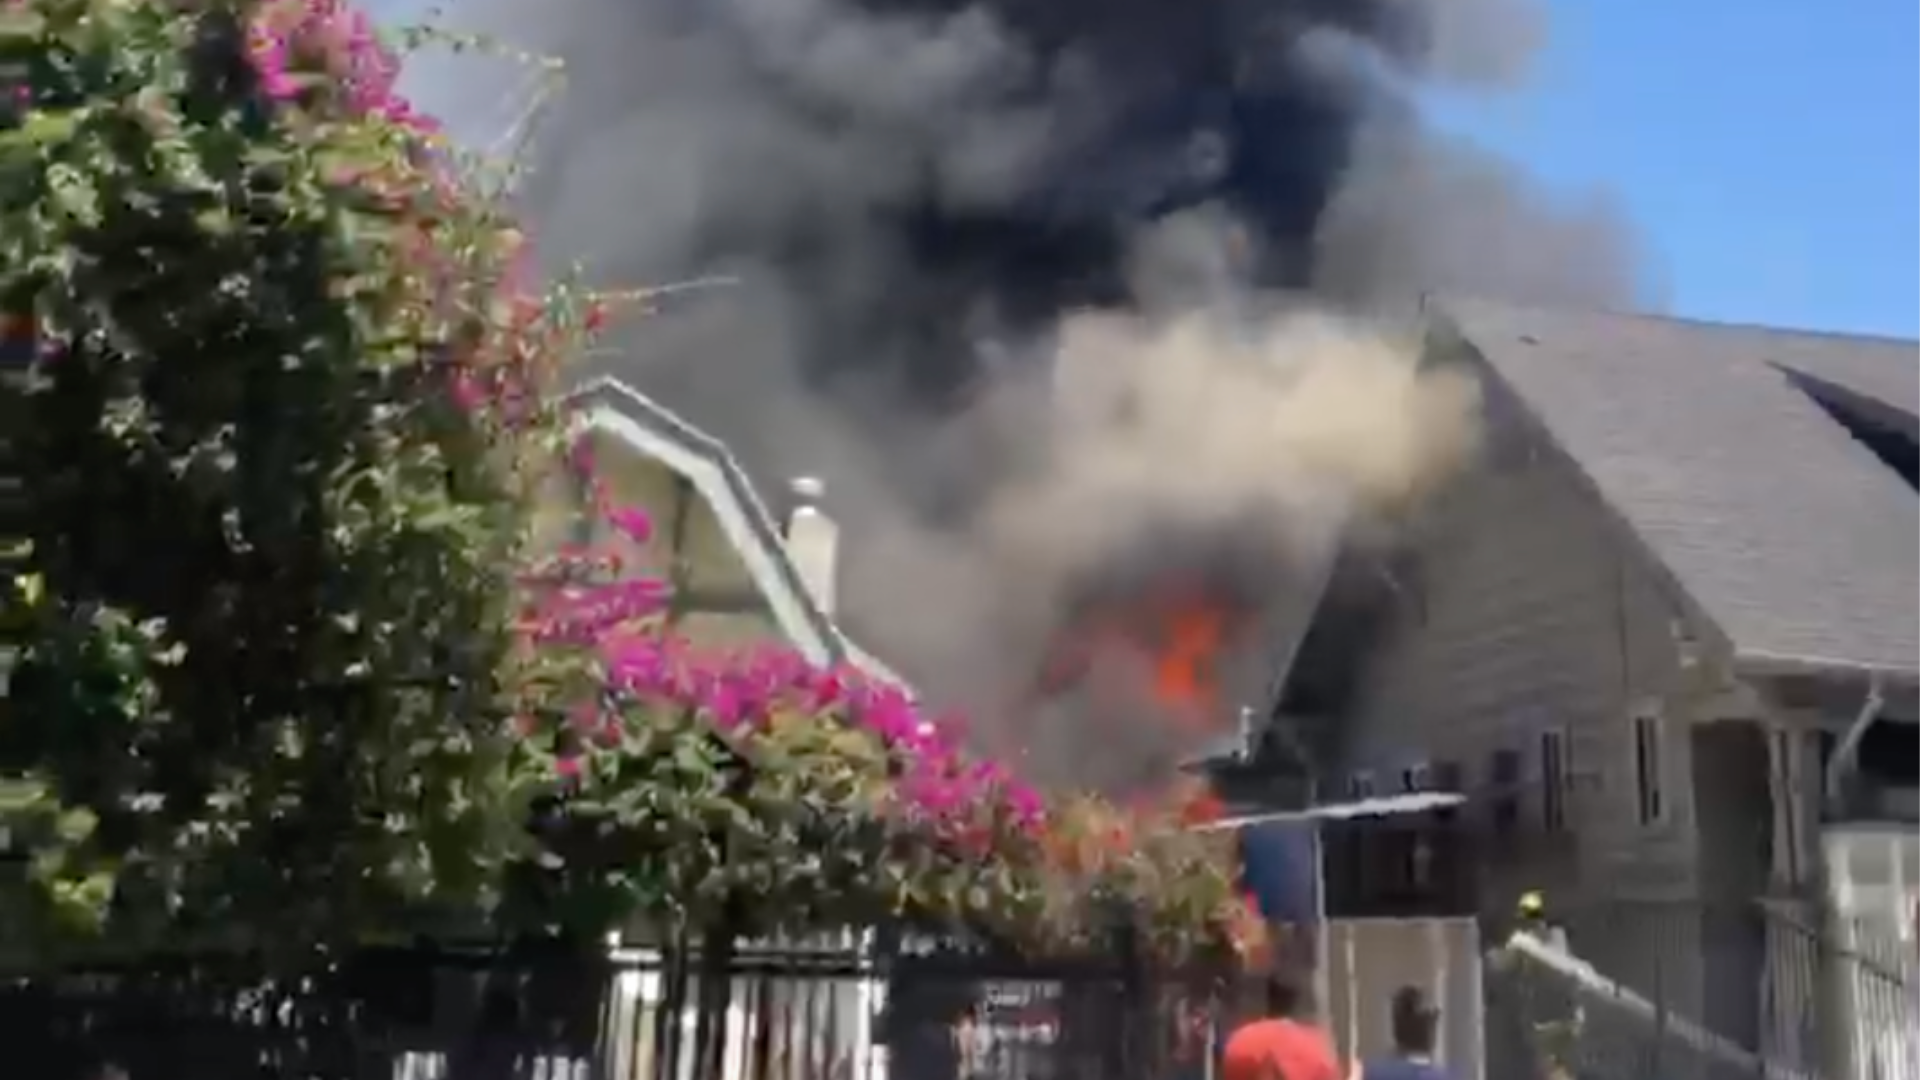 A fire burns in Koreatown on July 3, 2020. (Viewer video)